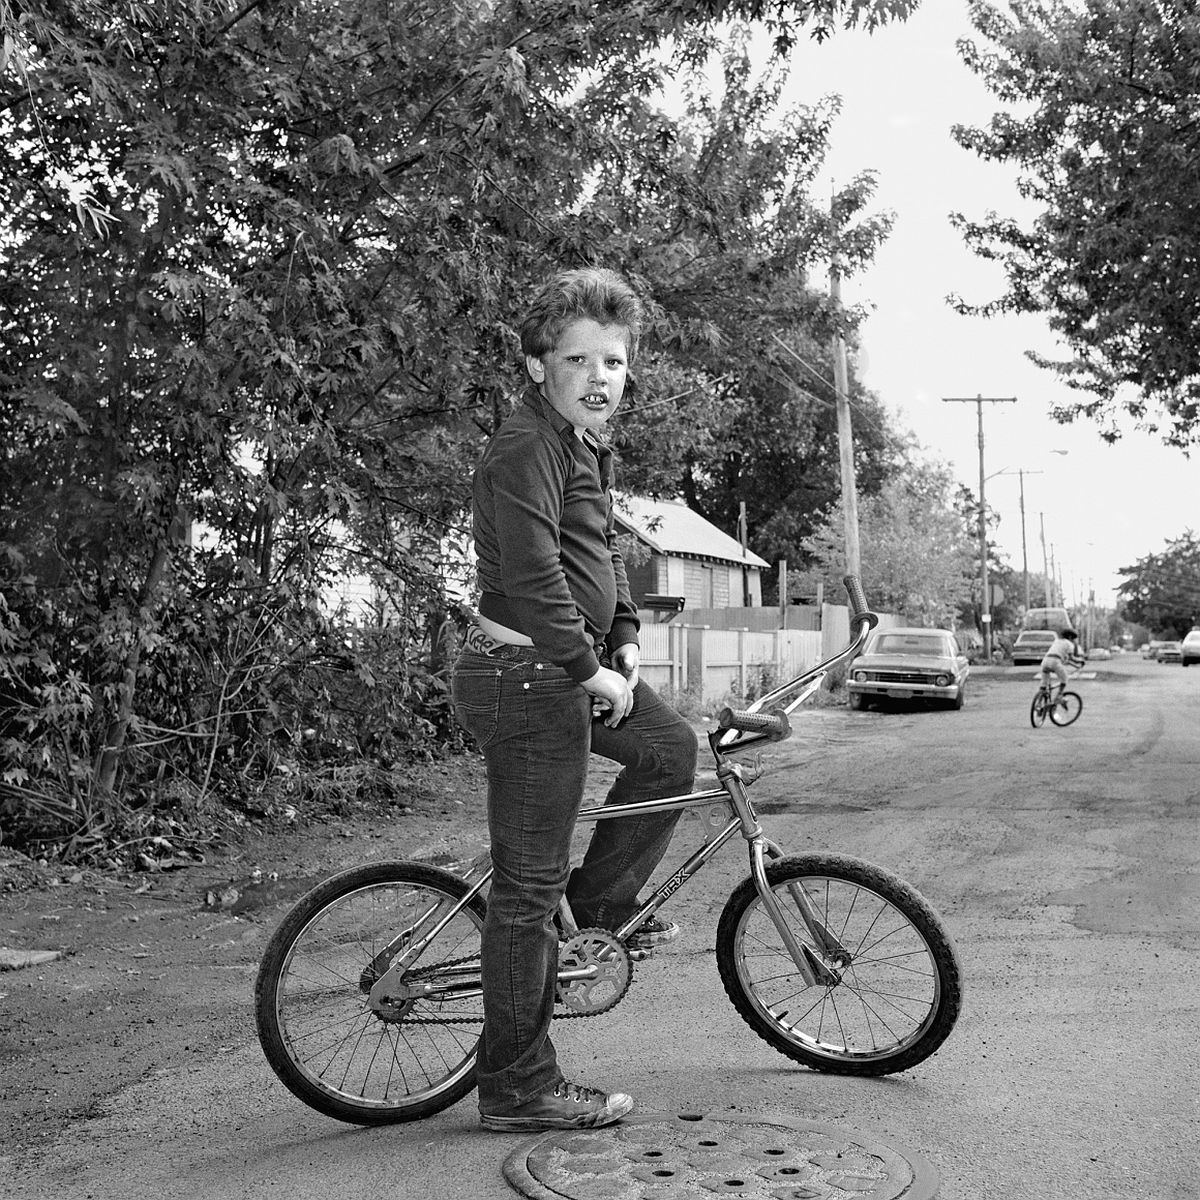 Boy on a Bike 1983-84 gelatin silver print 14 x 11 inches